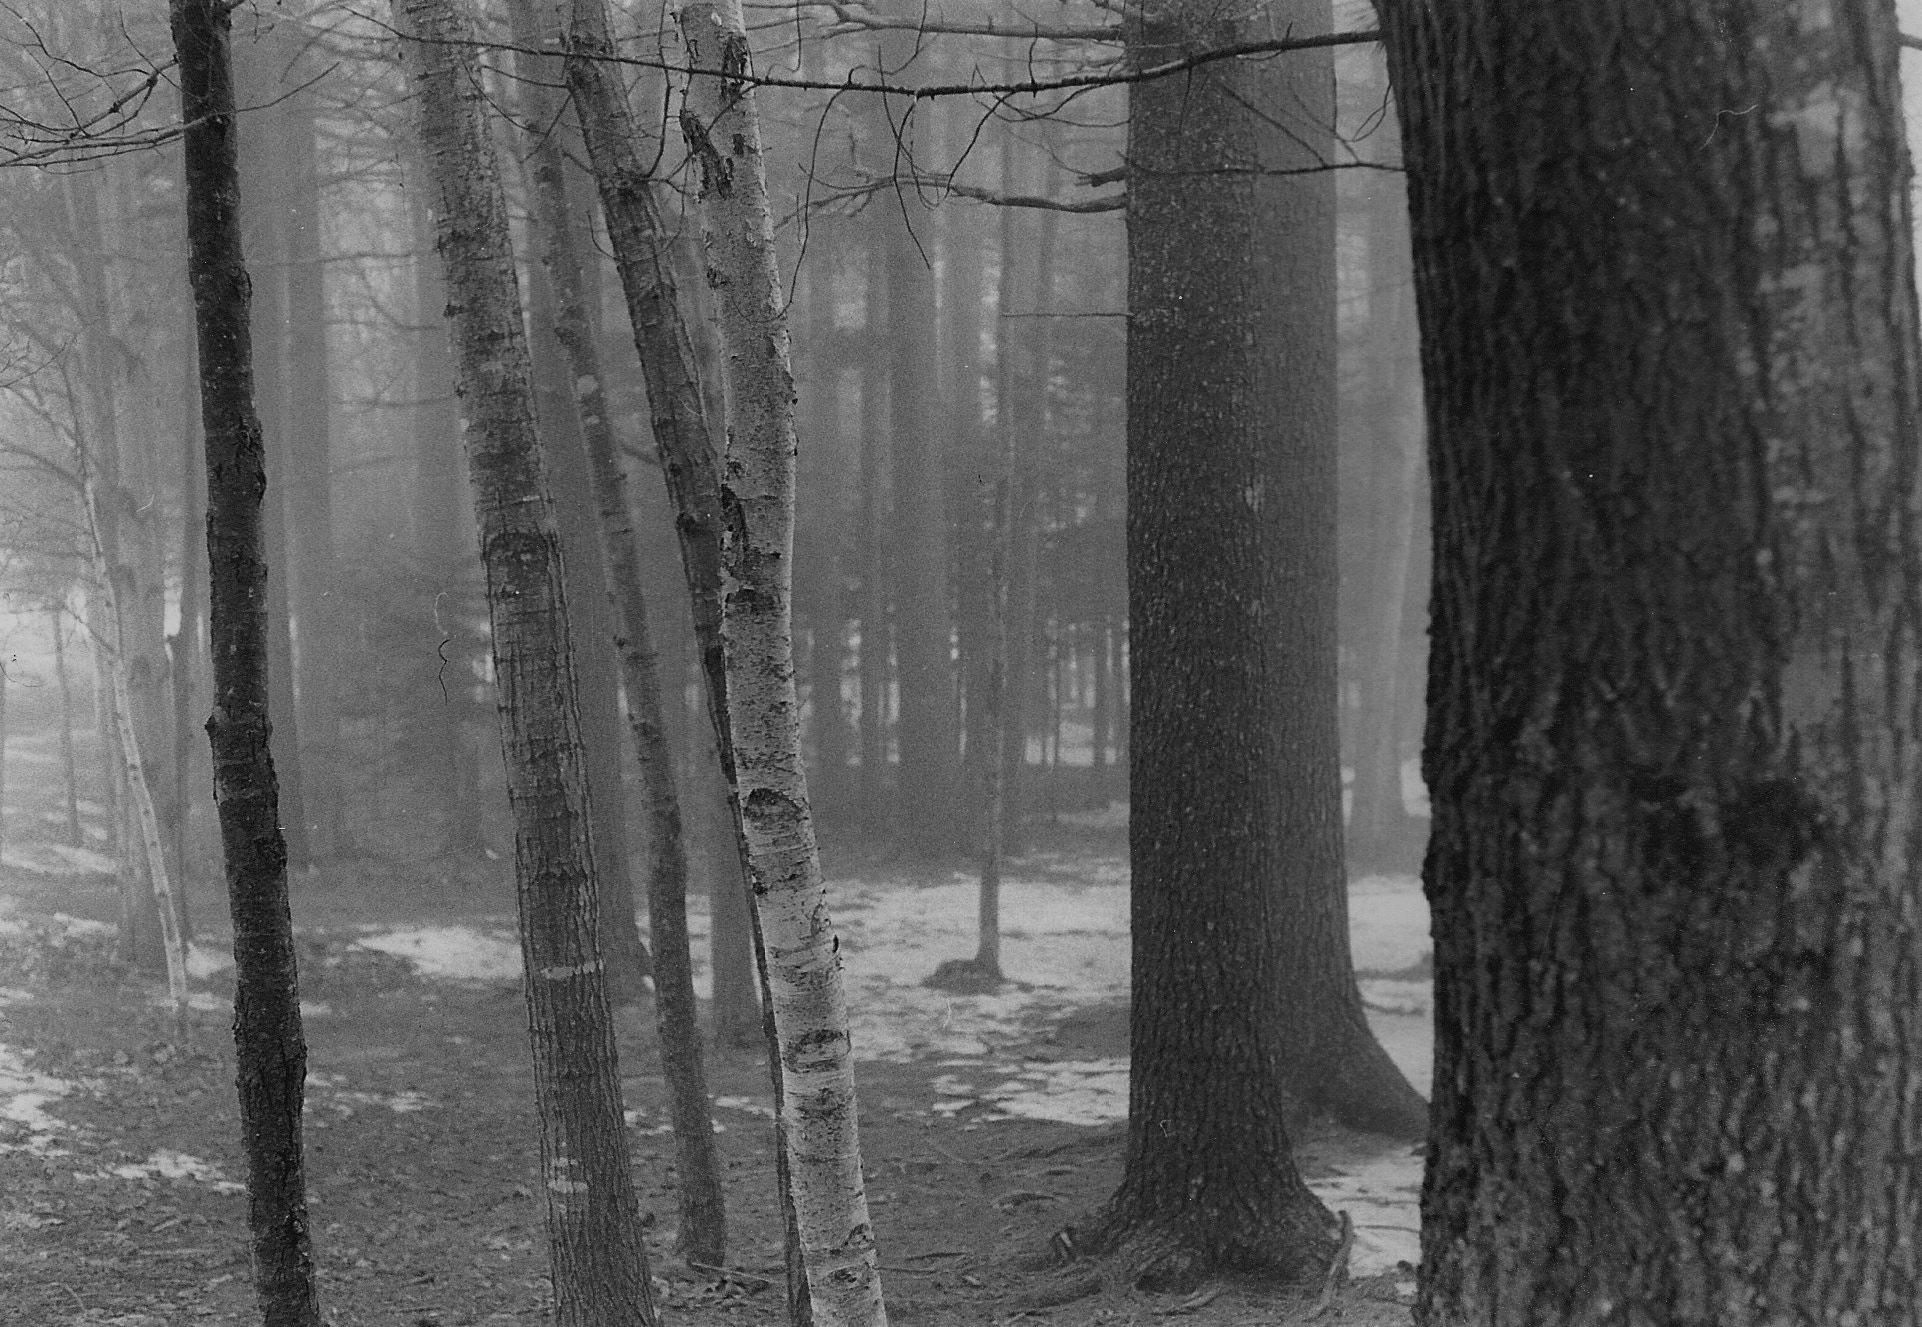 Photograph Mist by Victoria Clemons on 500px